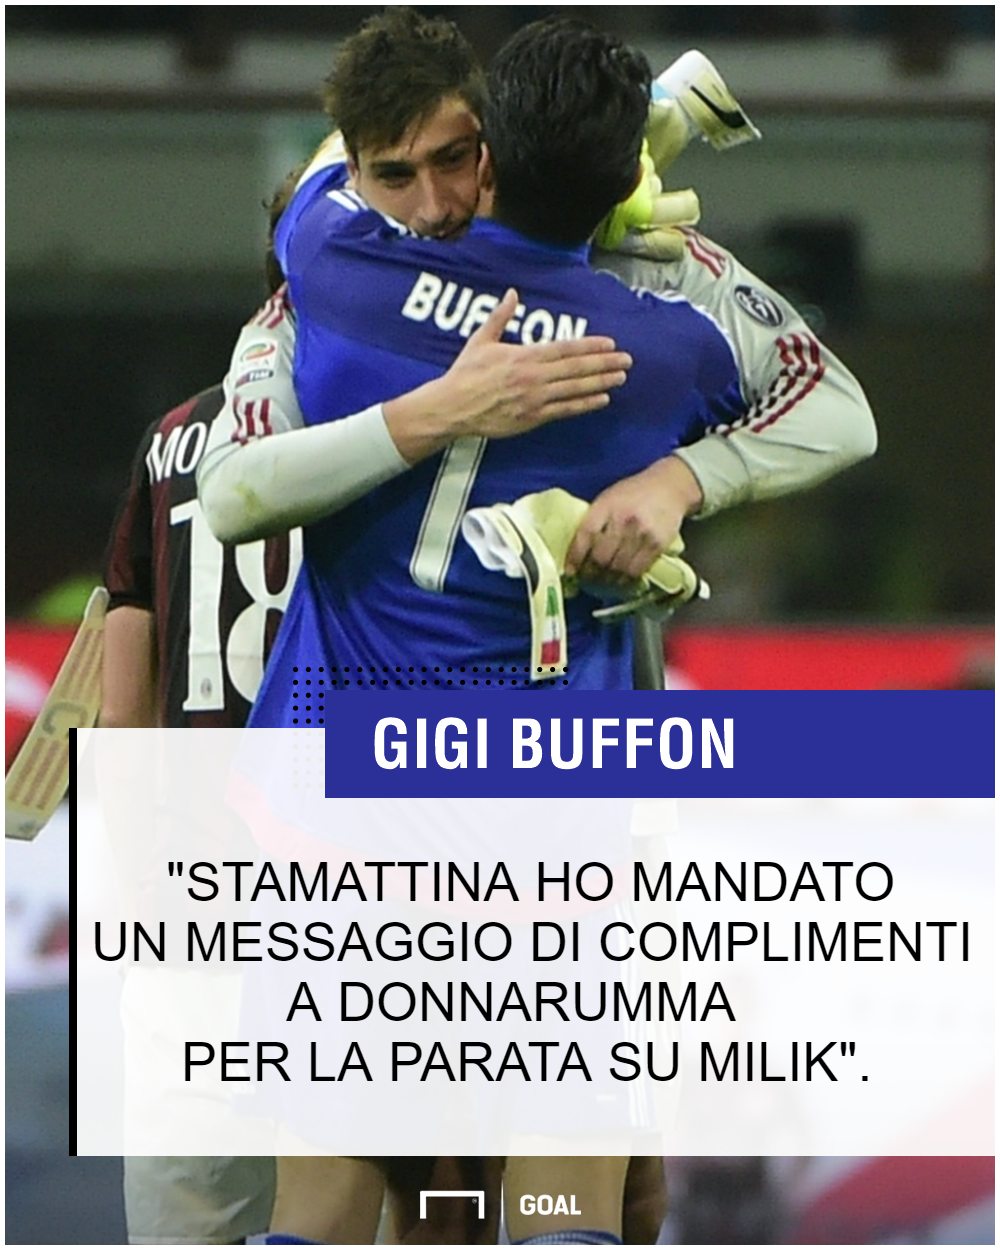 PS Buffon Donnarumma